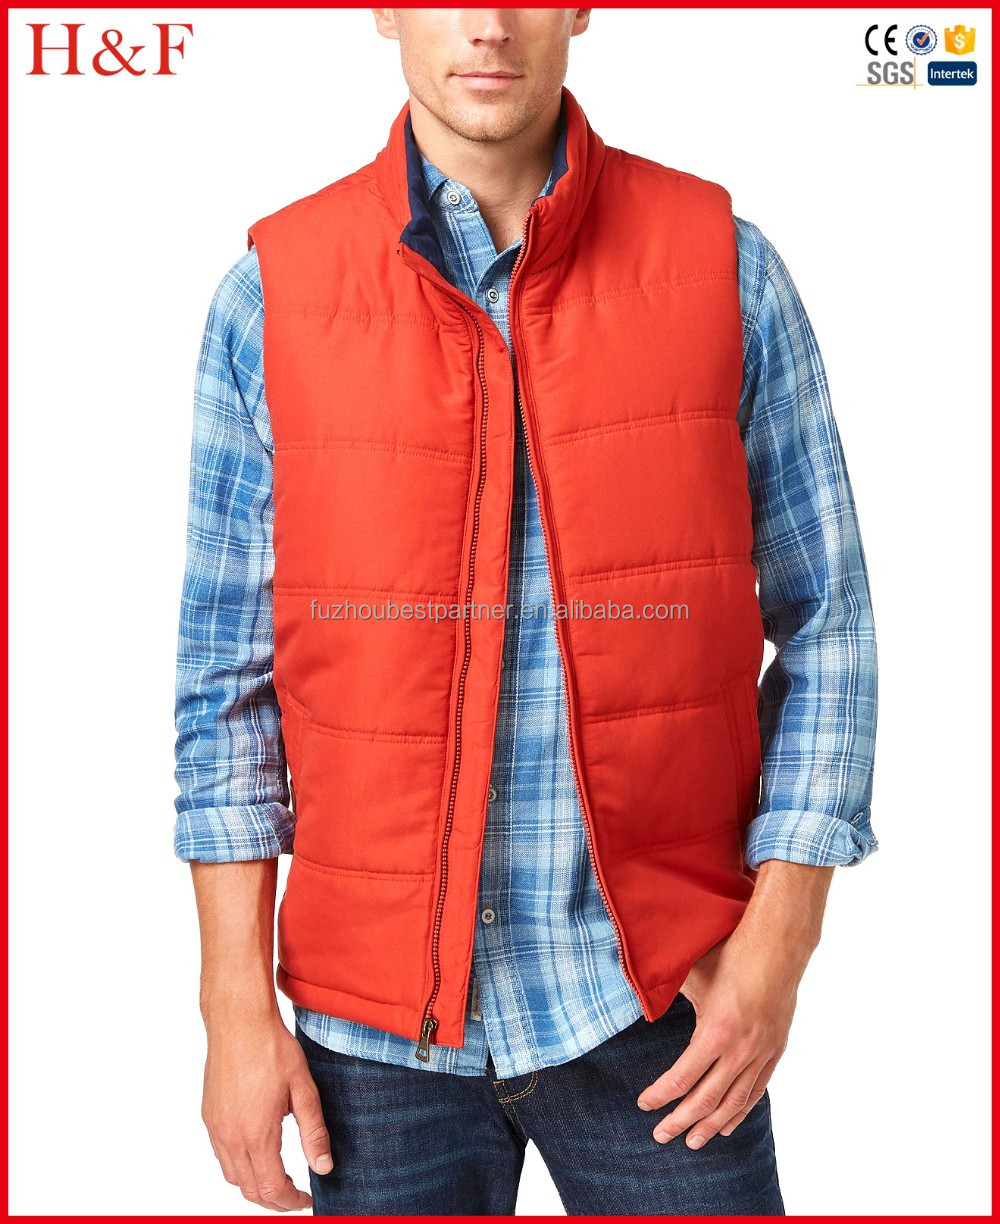 2016 latest desigh mens vest cheap fleece jacket without sleeves for men